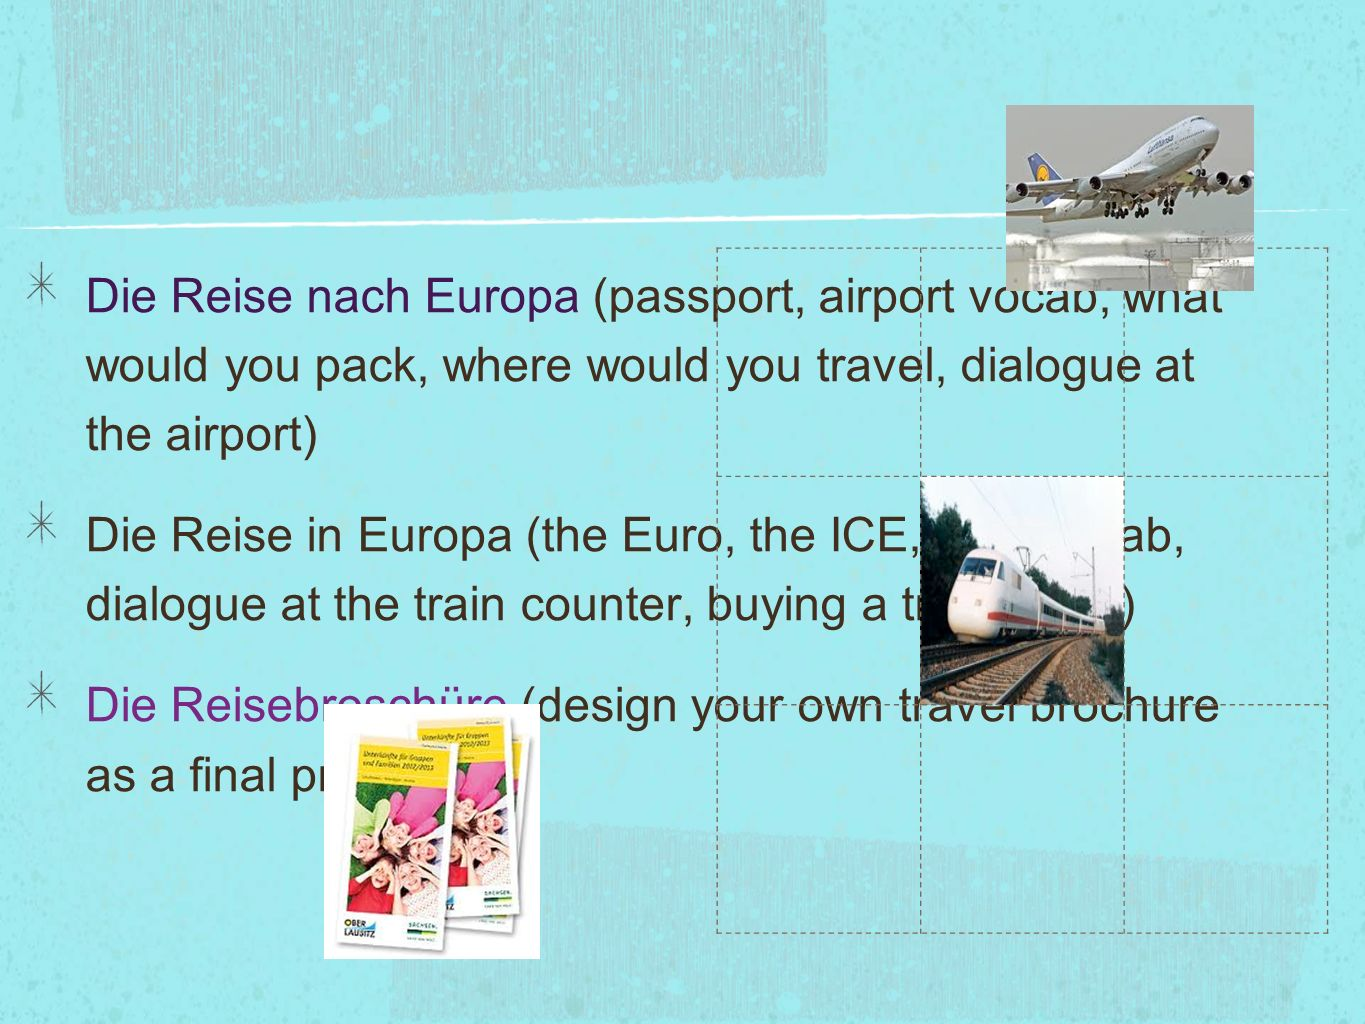 Die Reise nach Europa (passport, airport vocab, what would you pack, where would you travel, dialogue at the airport)